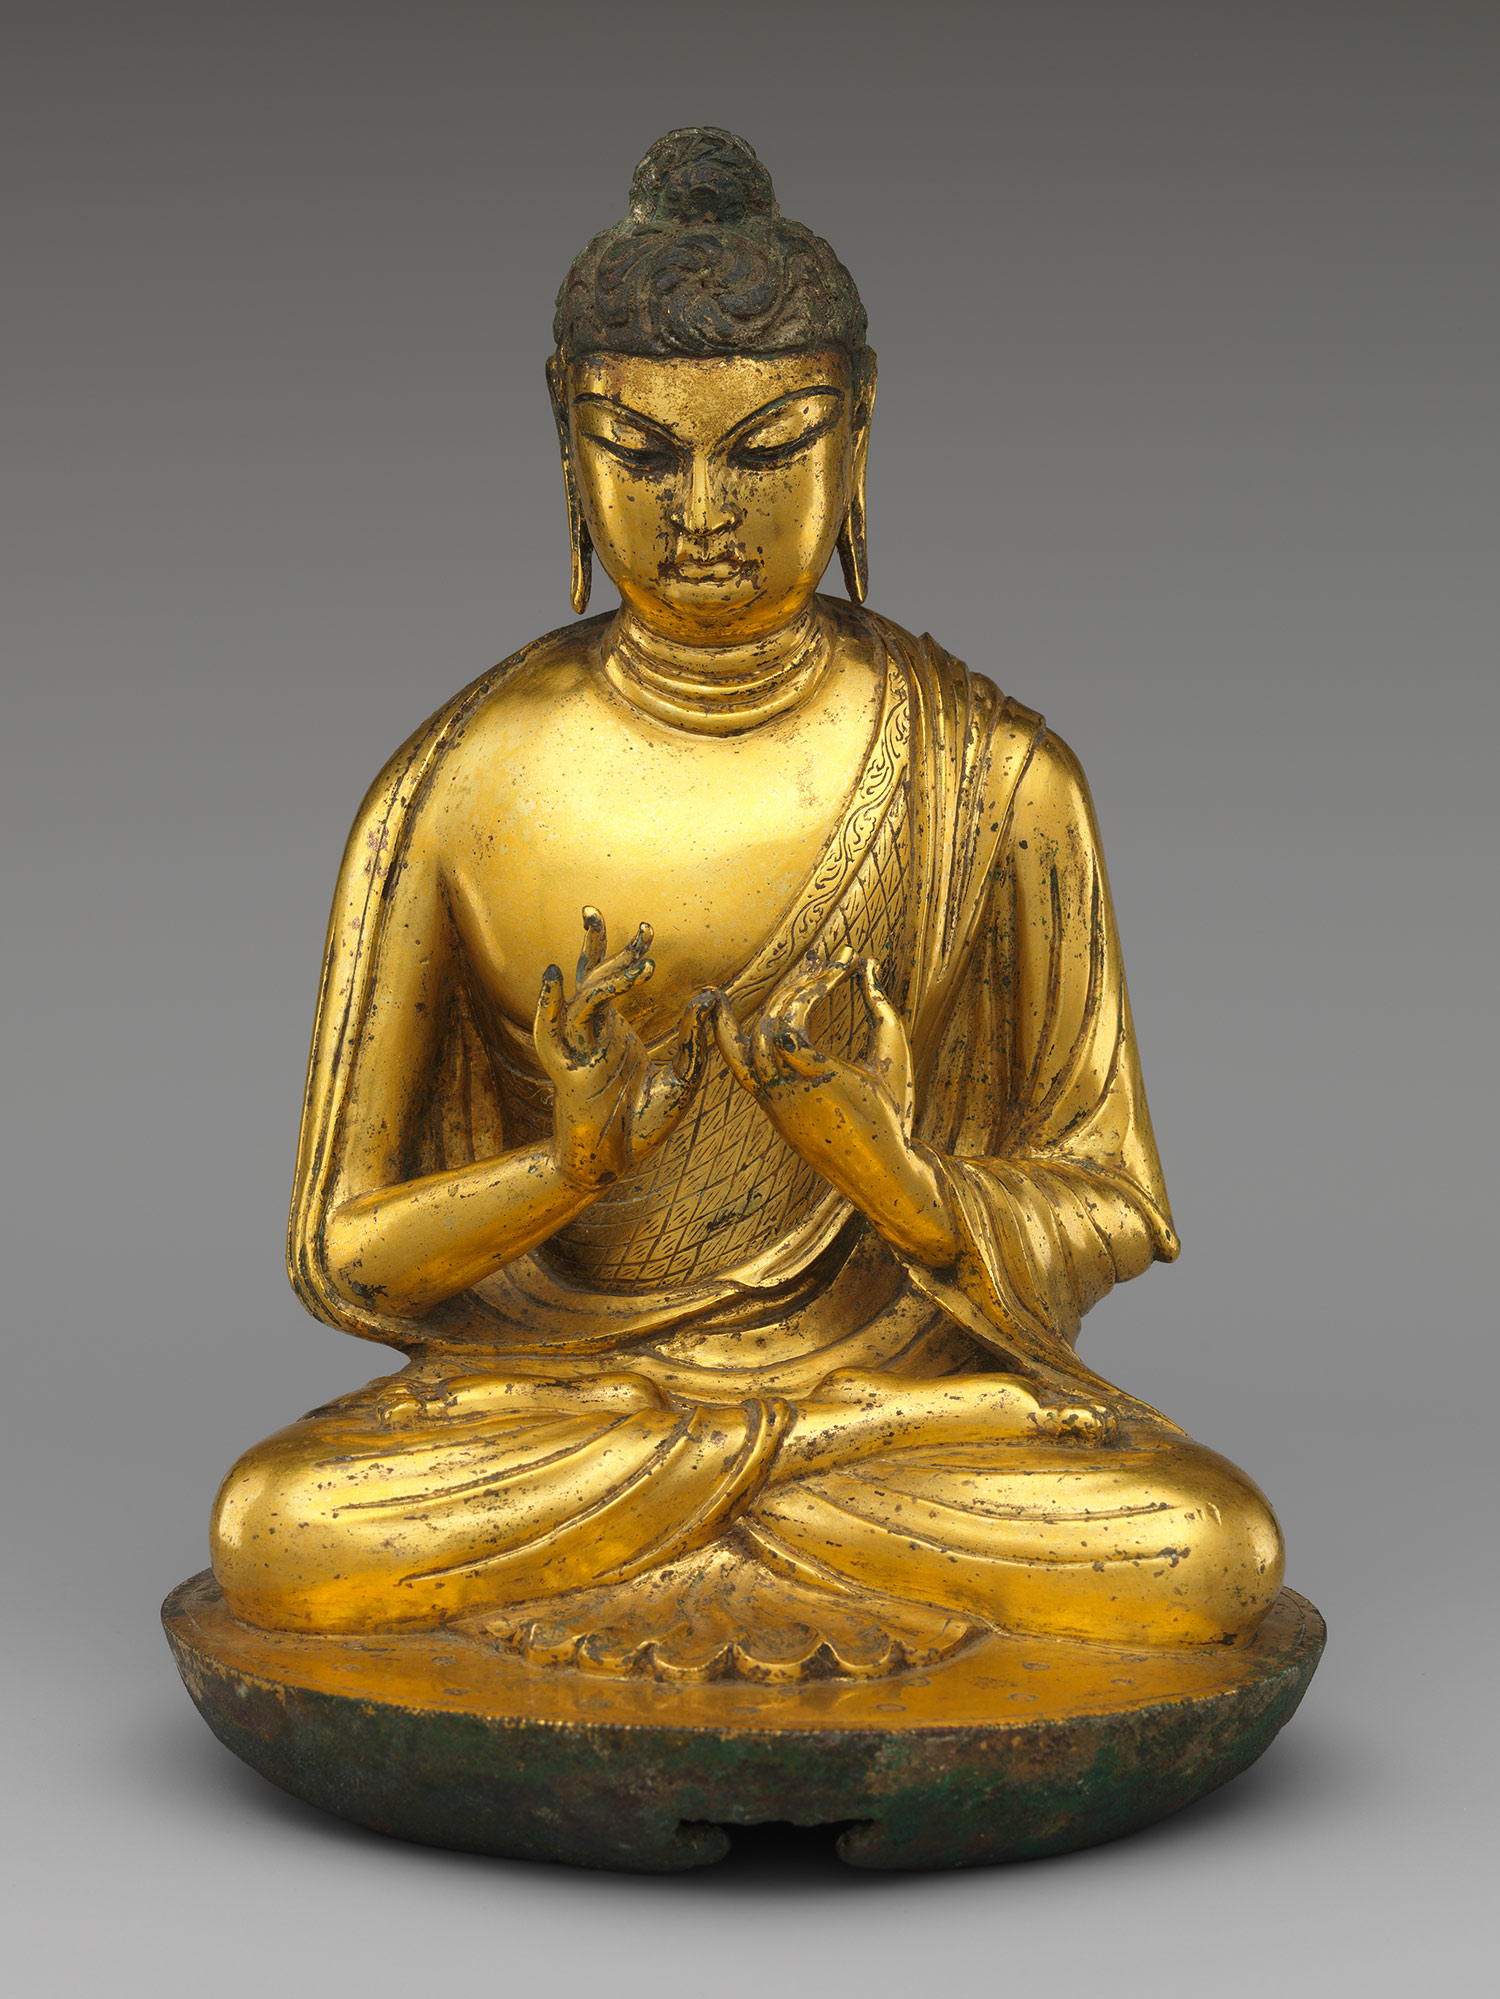 the representations of buddha in india and china Quizlet provides term:china buddhism confucianism = abuddhism india, china, hinduism, buddhism a pose or gesture in artistic representations of buddha.